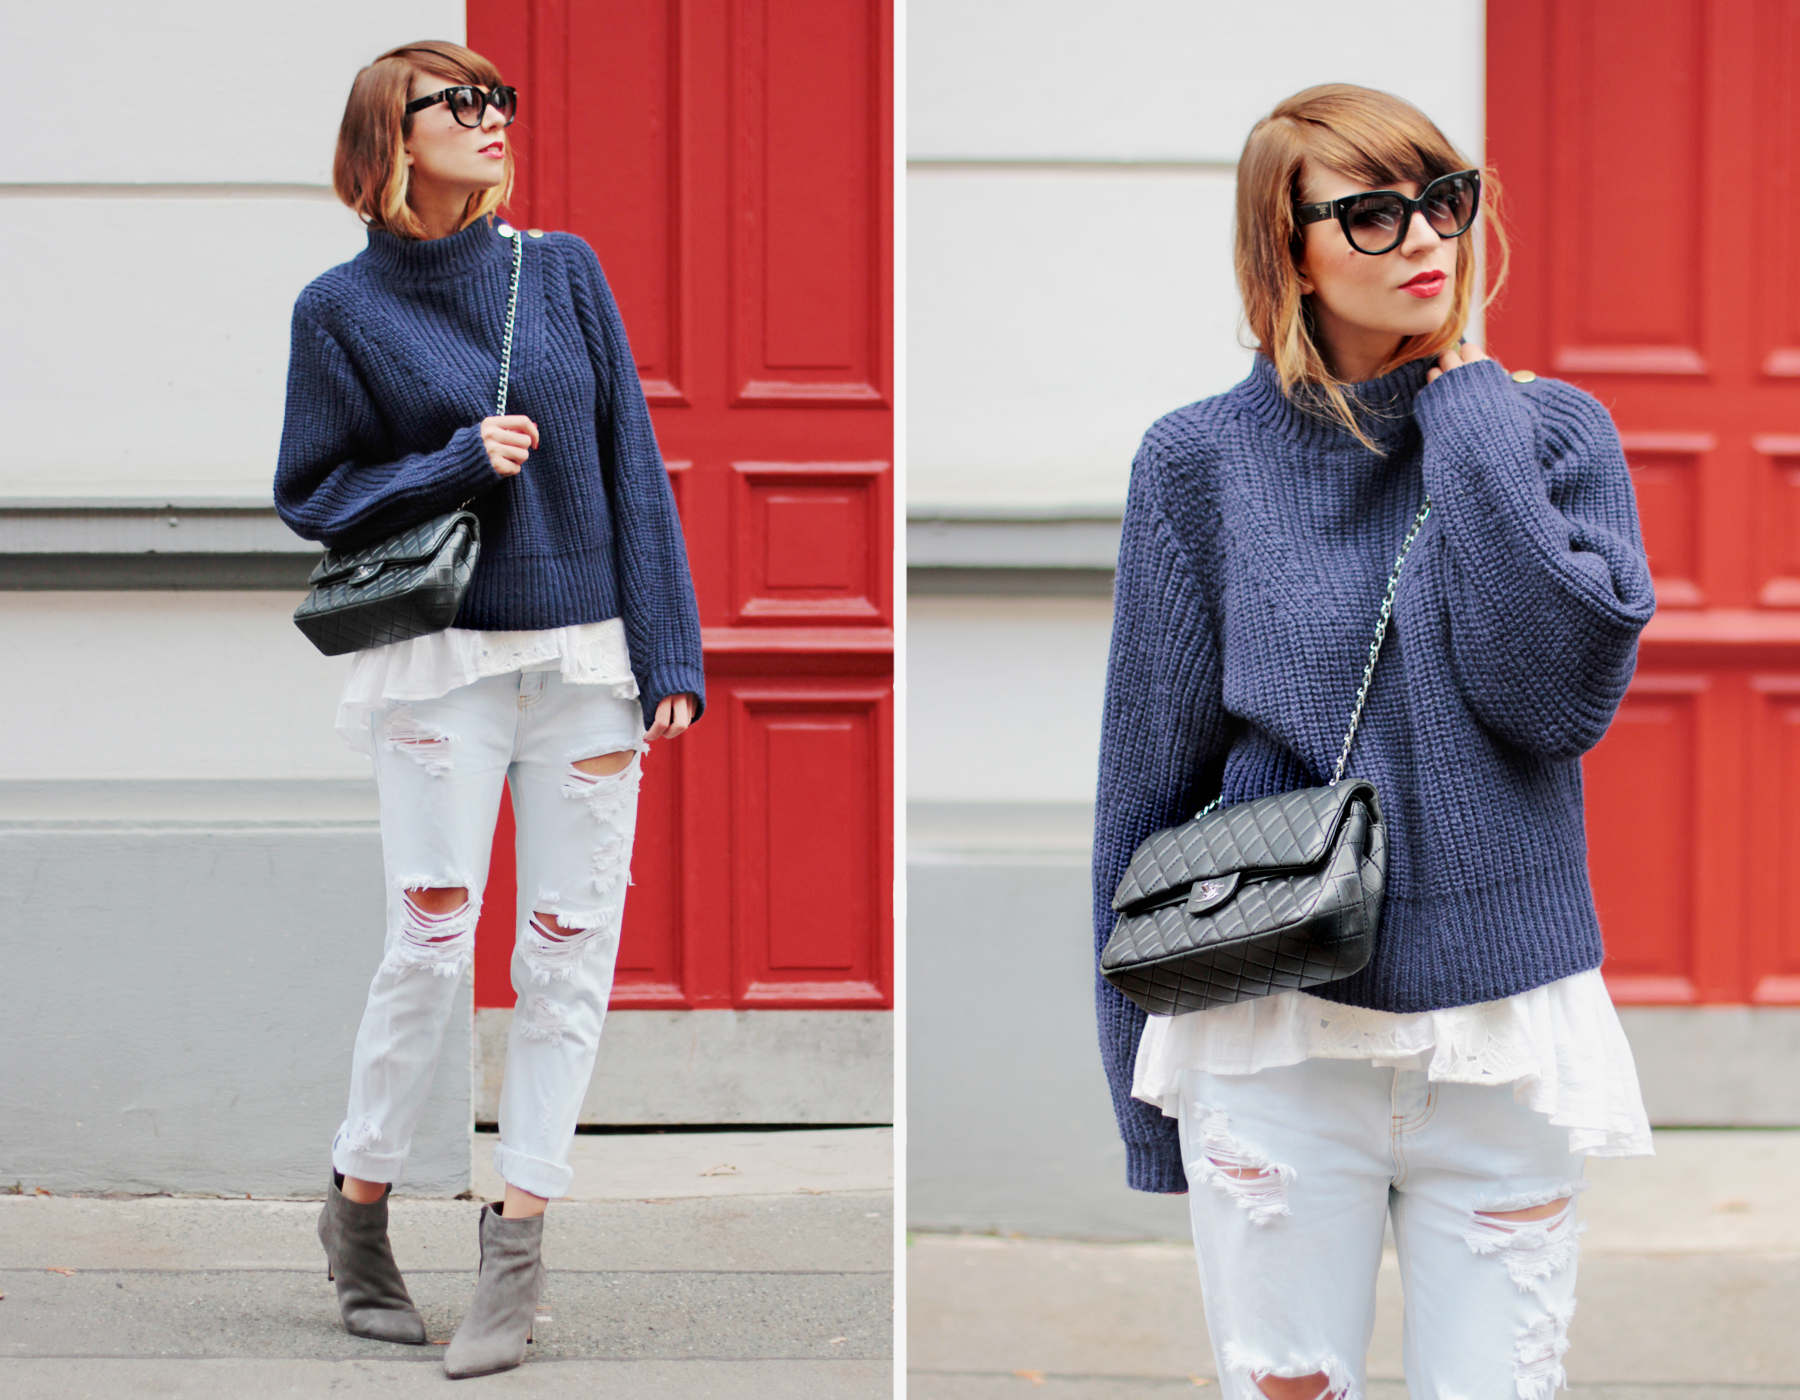 ootd outfit cozy winter female outfit boyfriend jeans lace chanel double flap knitwear blue red door styling fashionblogger cats & dogs modeblog ricarda schernus hannover düsseldorf berlin 2